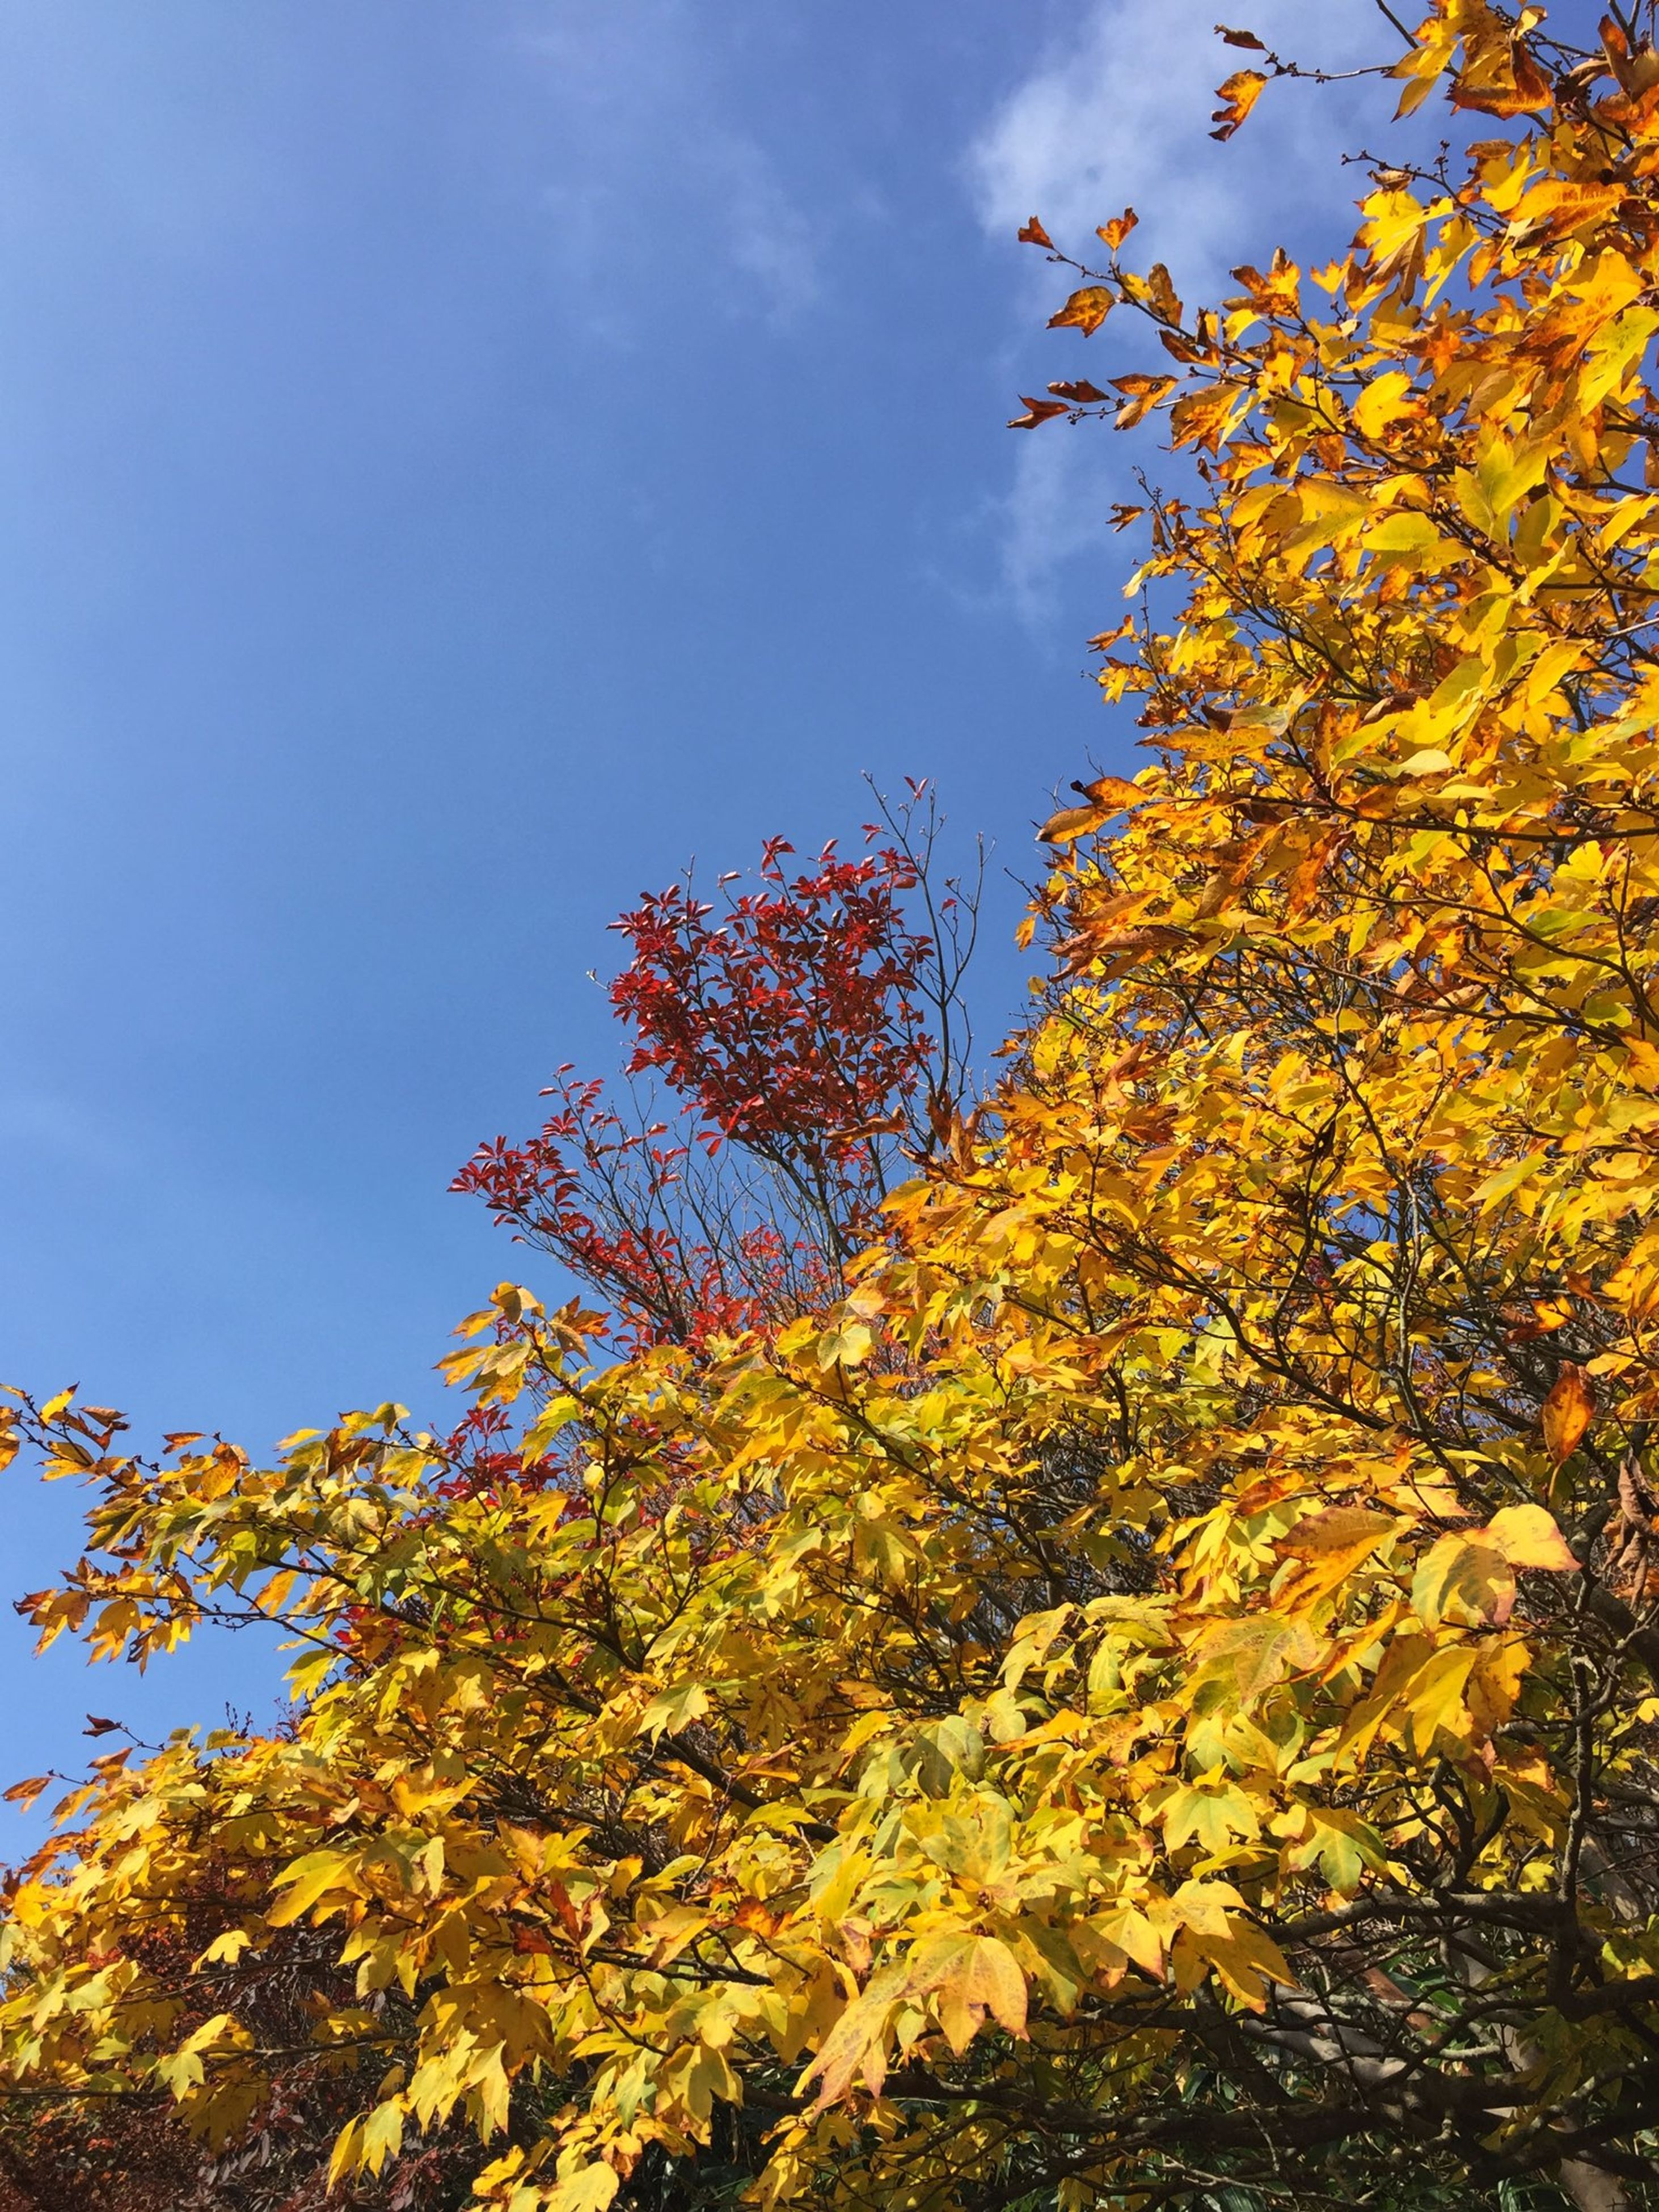 low angle view, tree, branch, growth, sky, flower, beauty in nature, nature, blue, freshness, leaf, autumn, clear sky, season, yellow, blossom, fragility, tranquility, day, change